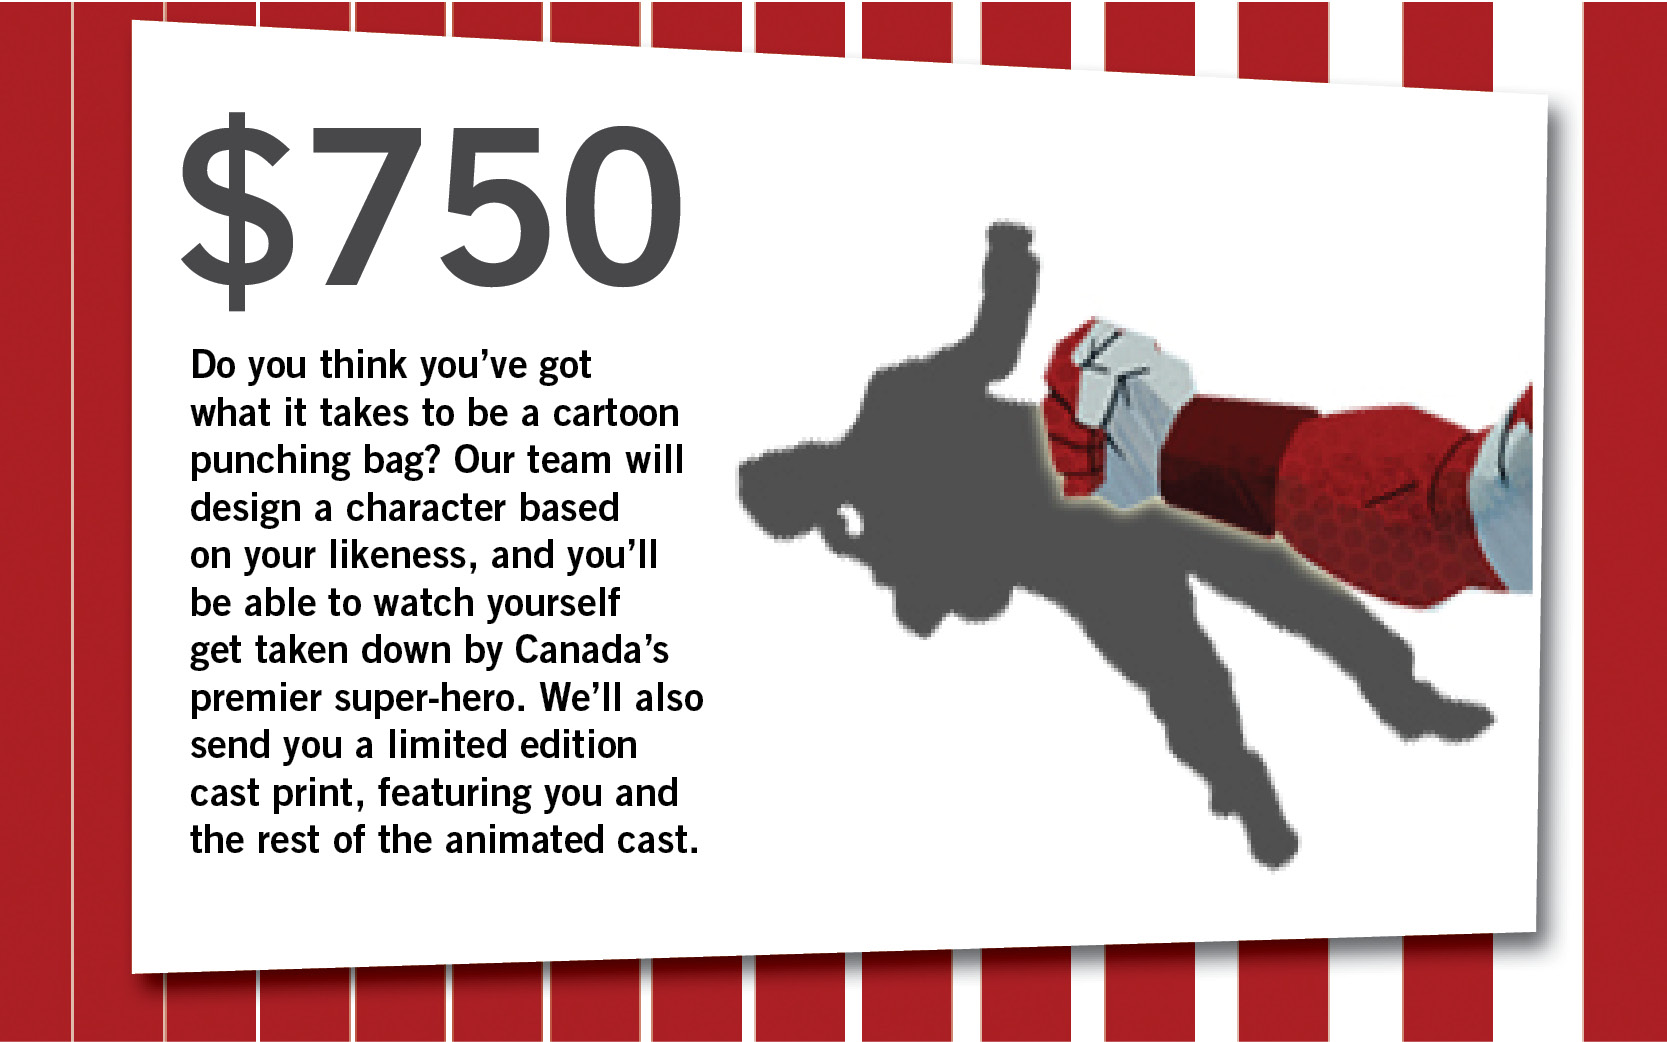 Do you think you've got what it takes to be a cartoon punching bag? Our team will design a character based on your likeness, and you'll be able to watch yourself get taken down by Canada's premier super-hero. We'll also send you a limited edition cast print, featuring you and the rest of the animated cast.